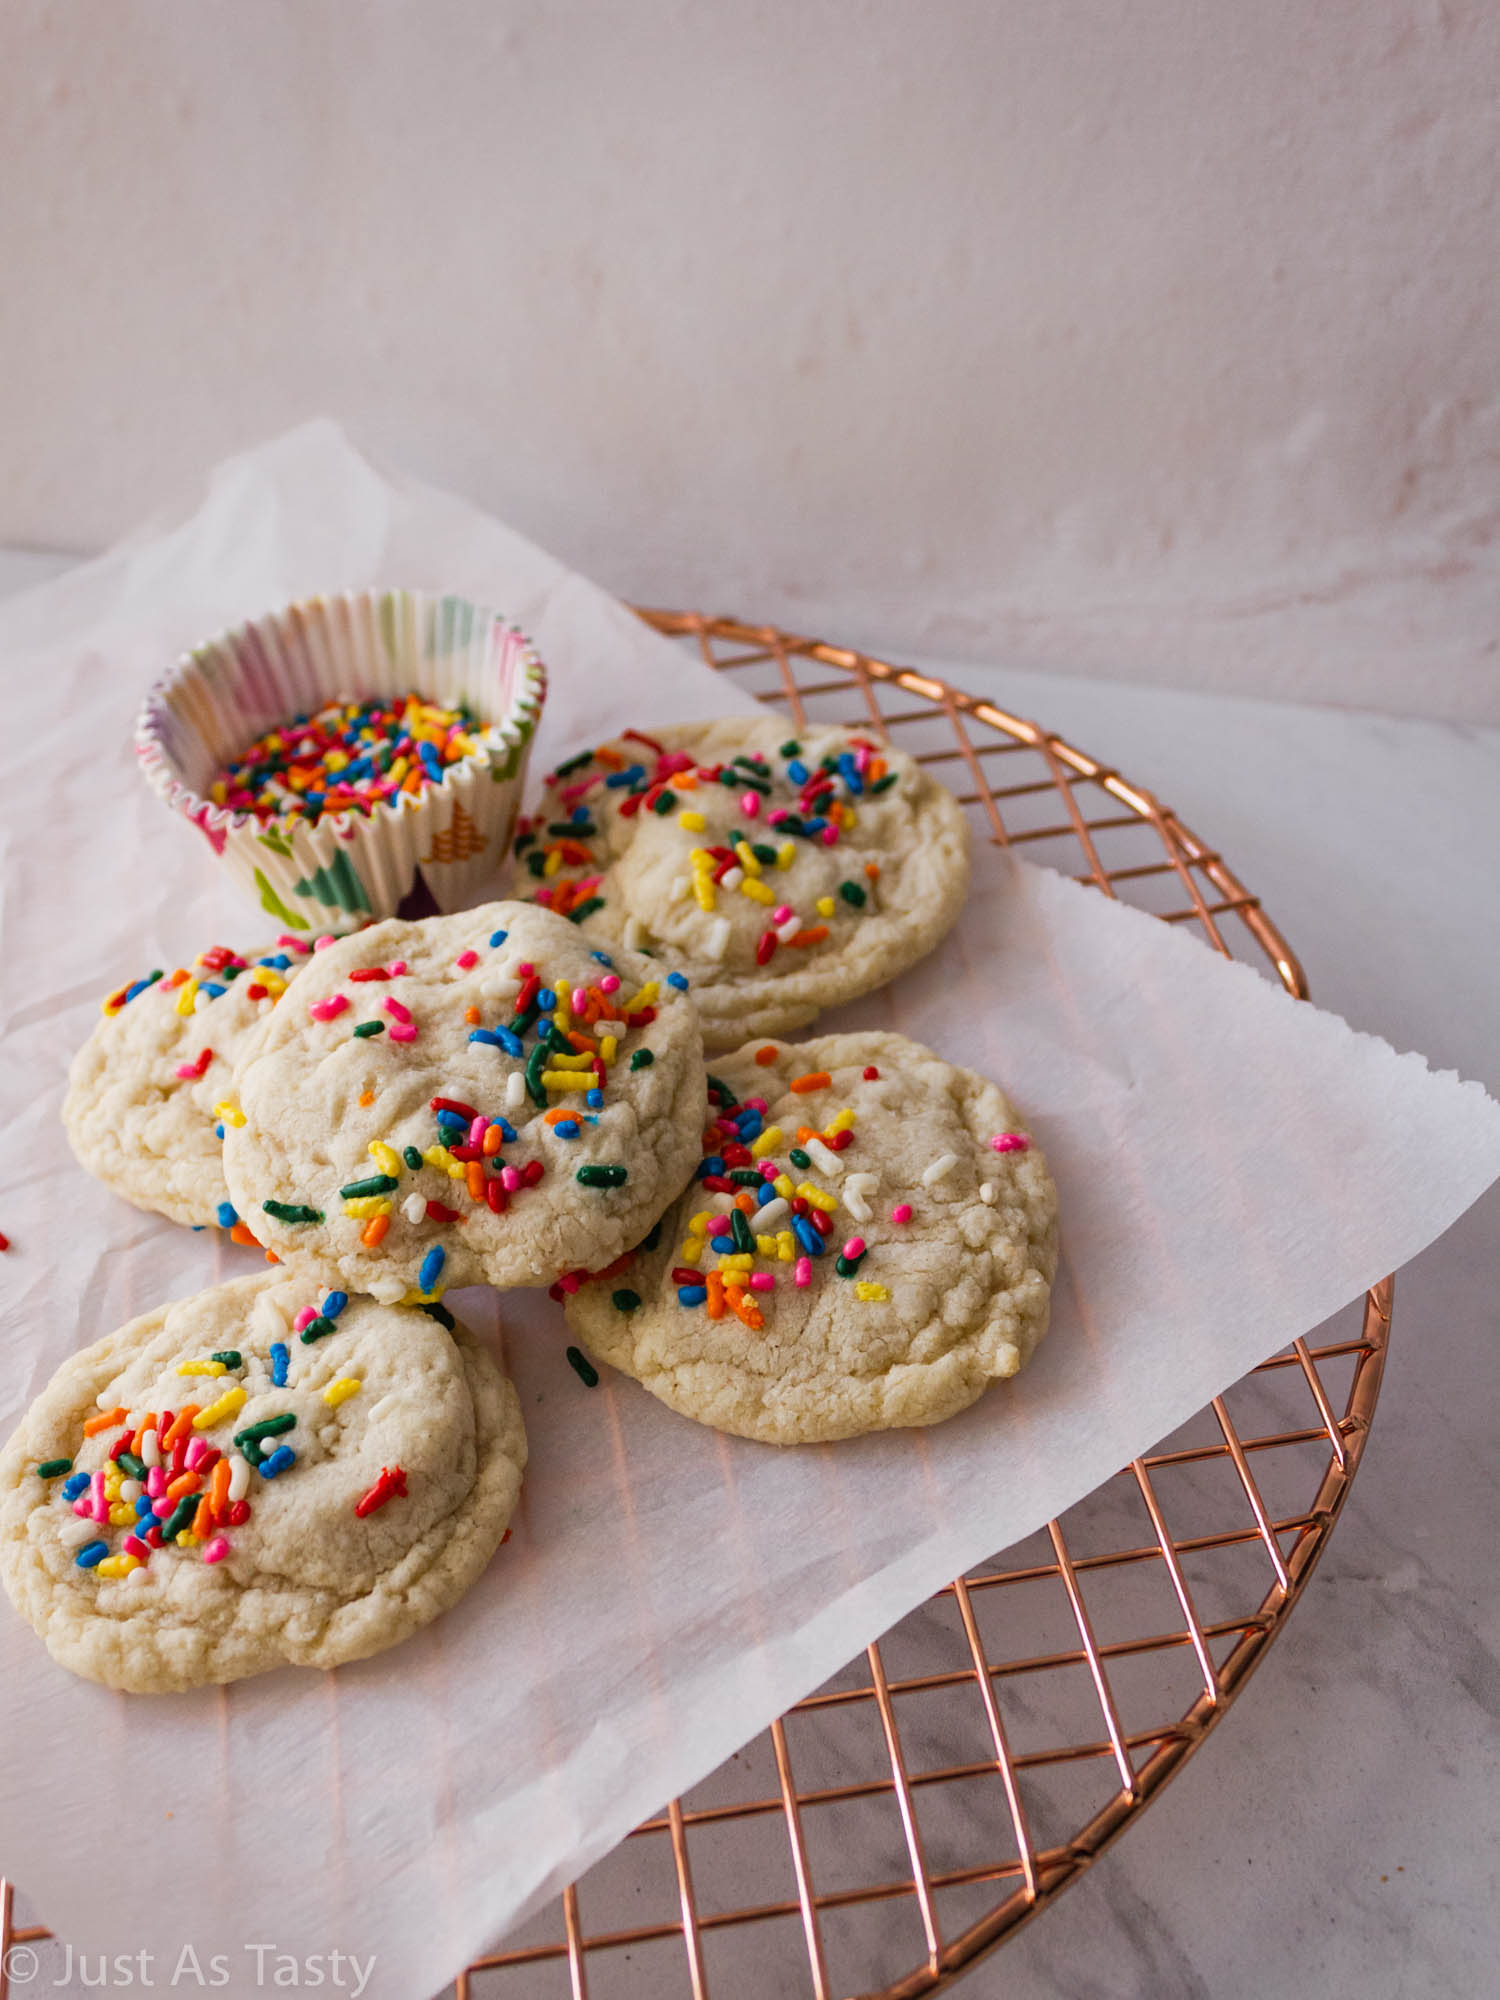 Sugar cookies topped with rainbow sprinkles on parchment paper.